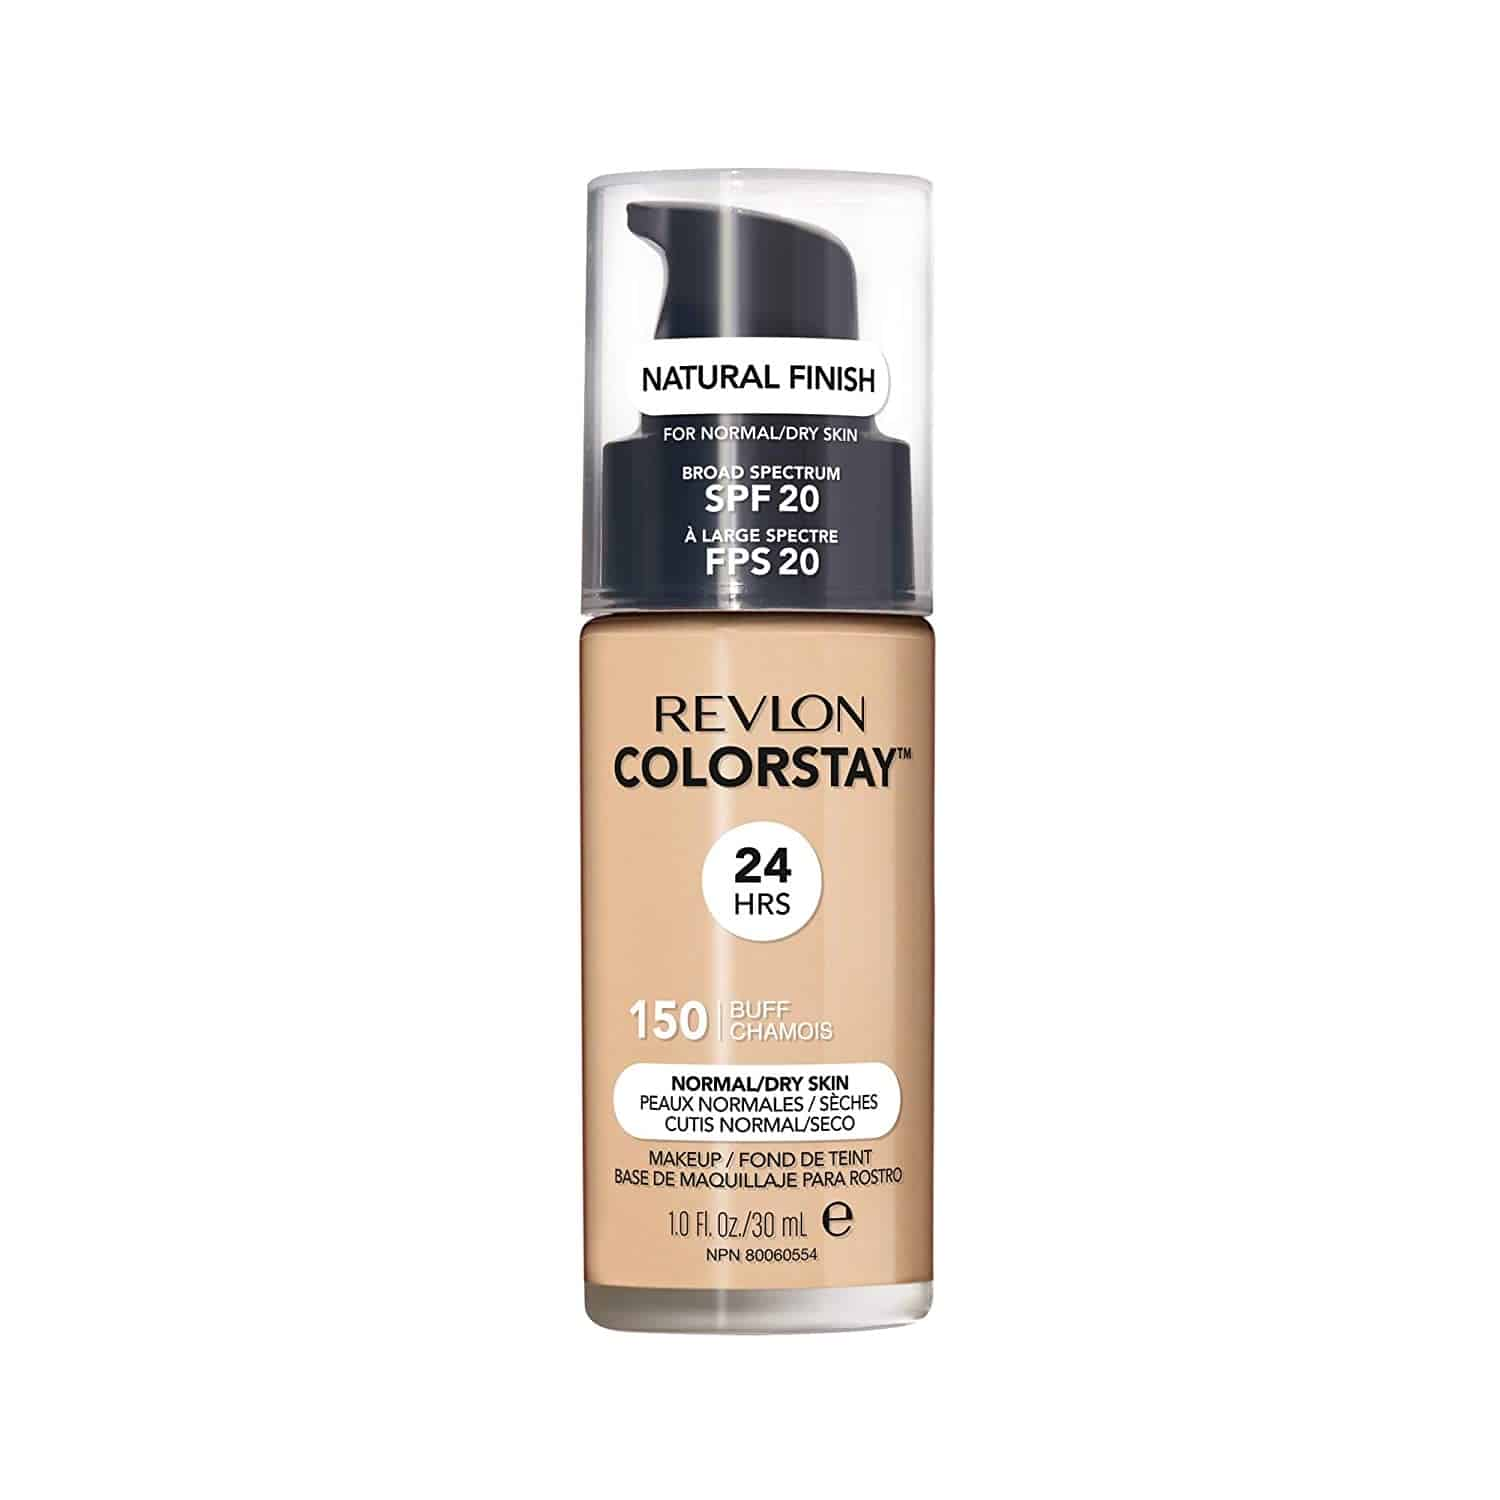 Revlon-Colorstay-Makeup-for-Normal-or-Dry-Skin